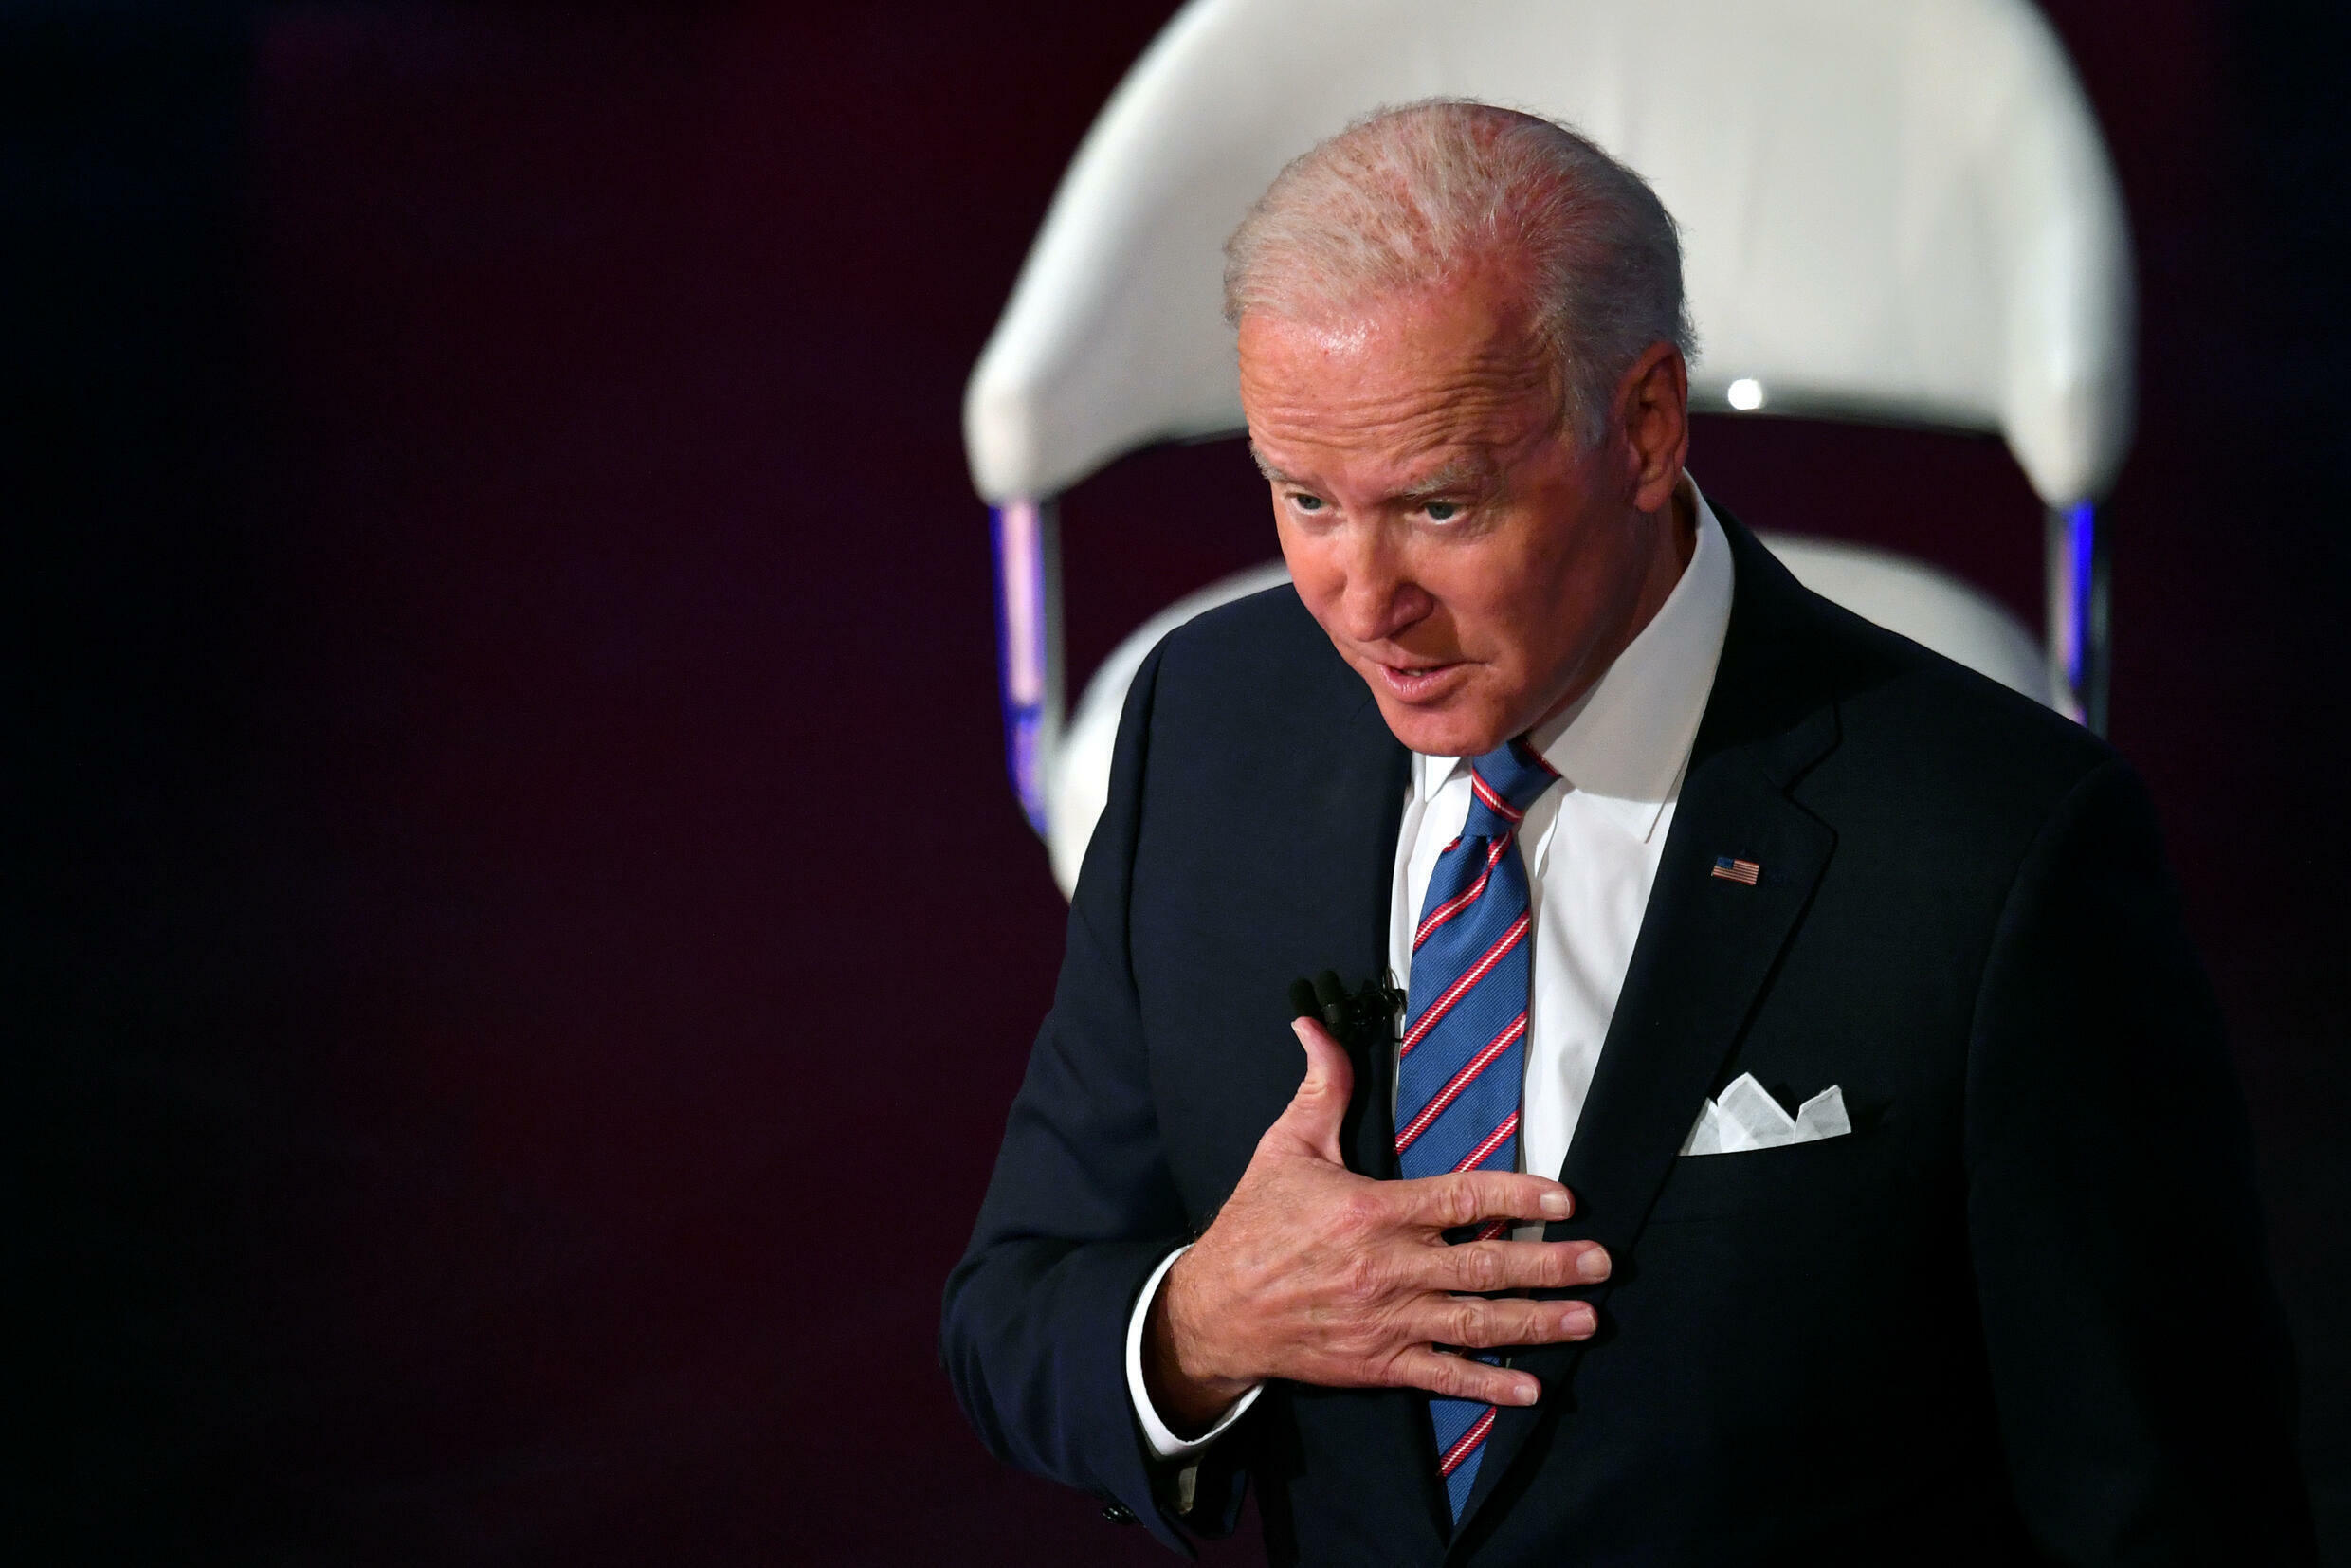 President Joe Biden says the US would defend Taiwan from China, although these appears at odds with the longtime policy of strategic ambiguity